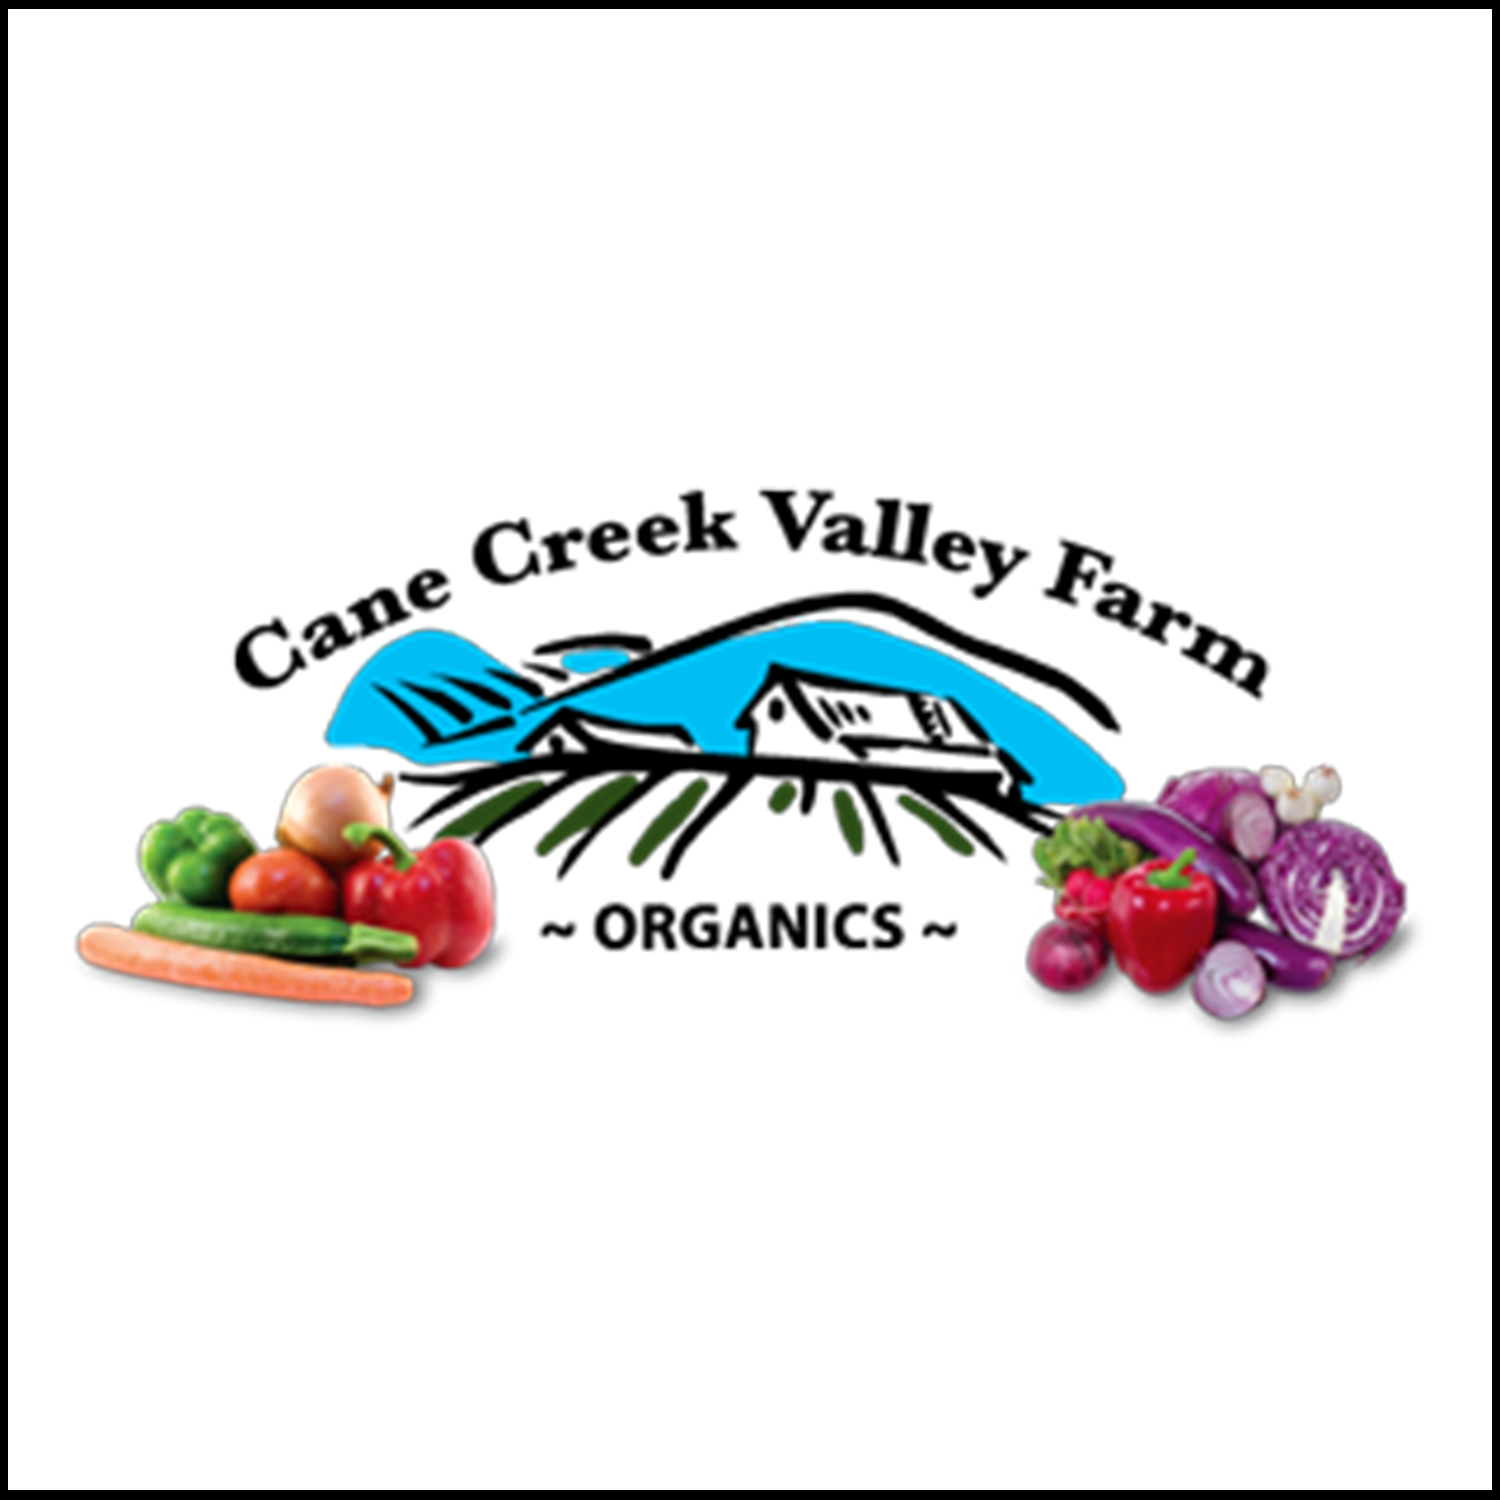 Cane Creek Valley Farm.png